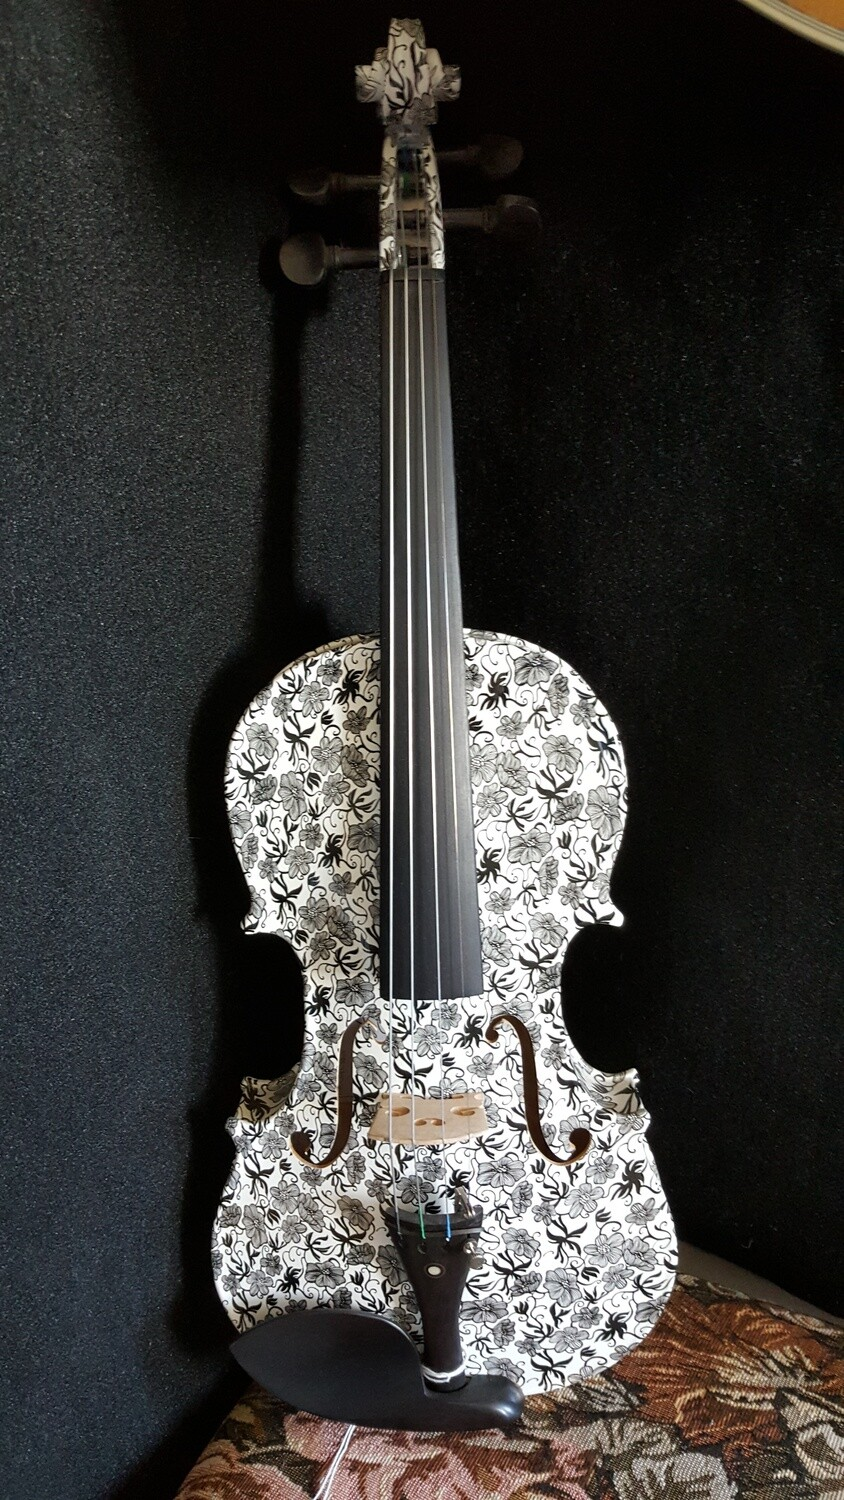 Geneva Dark Meadow Visual Art Violin